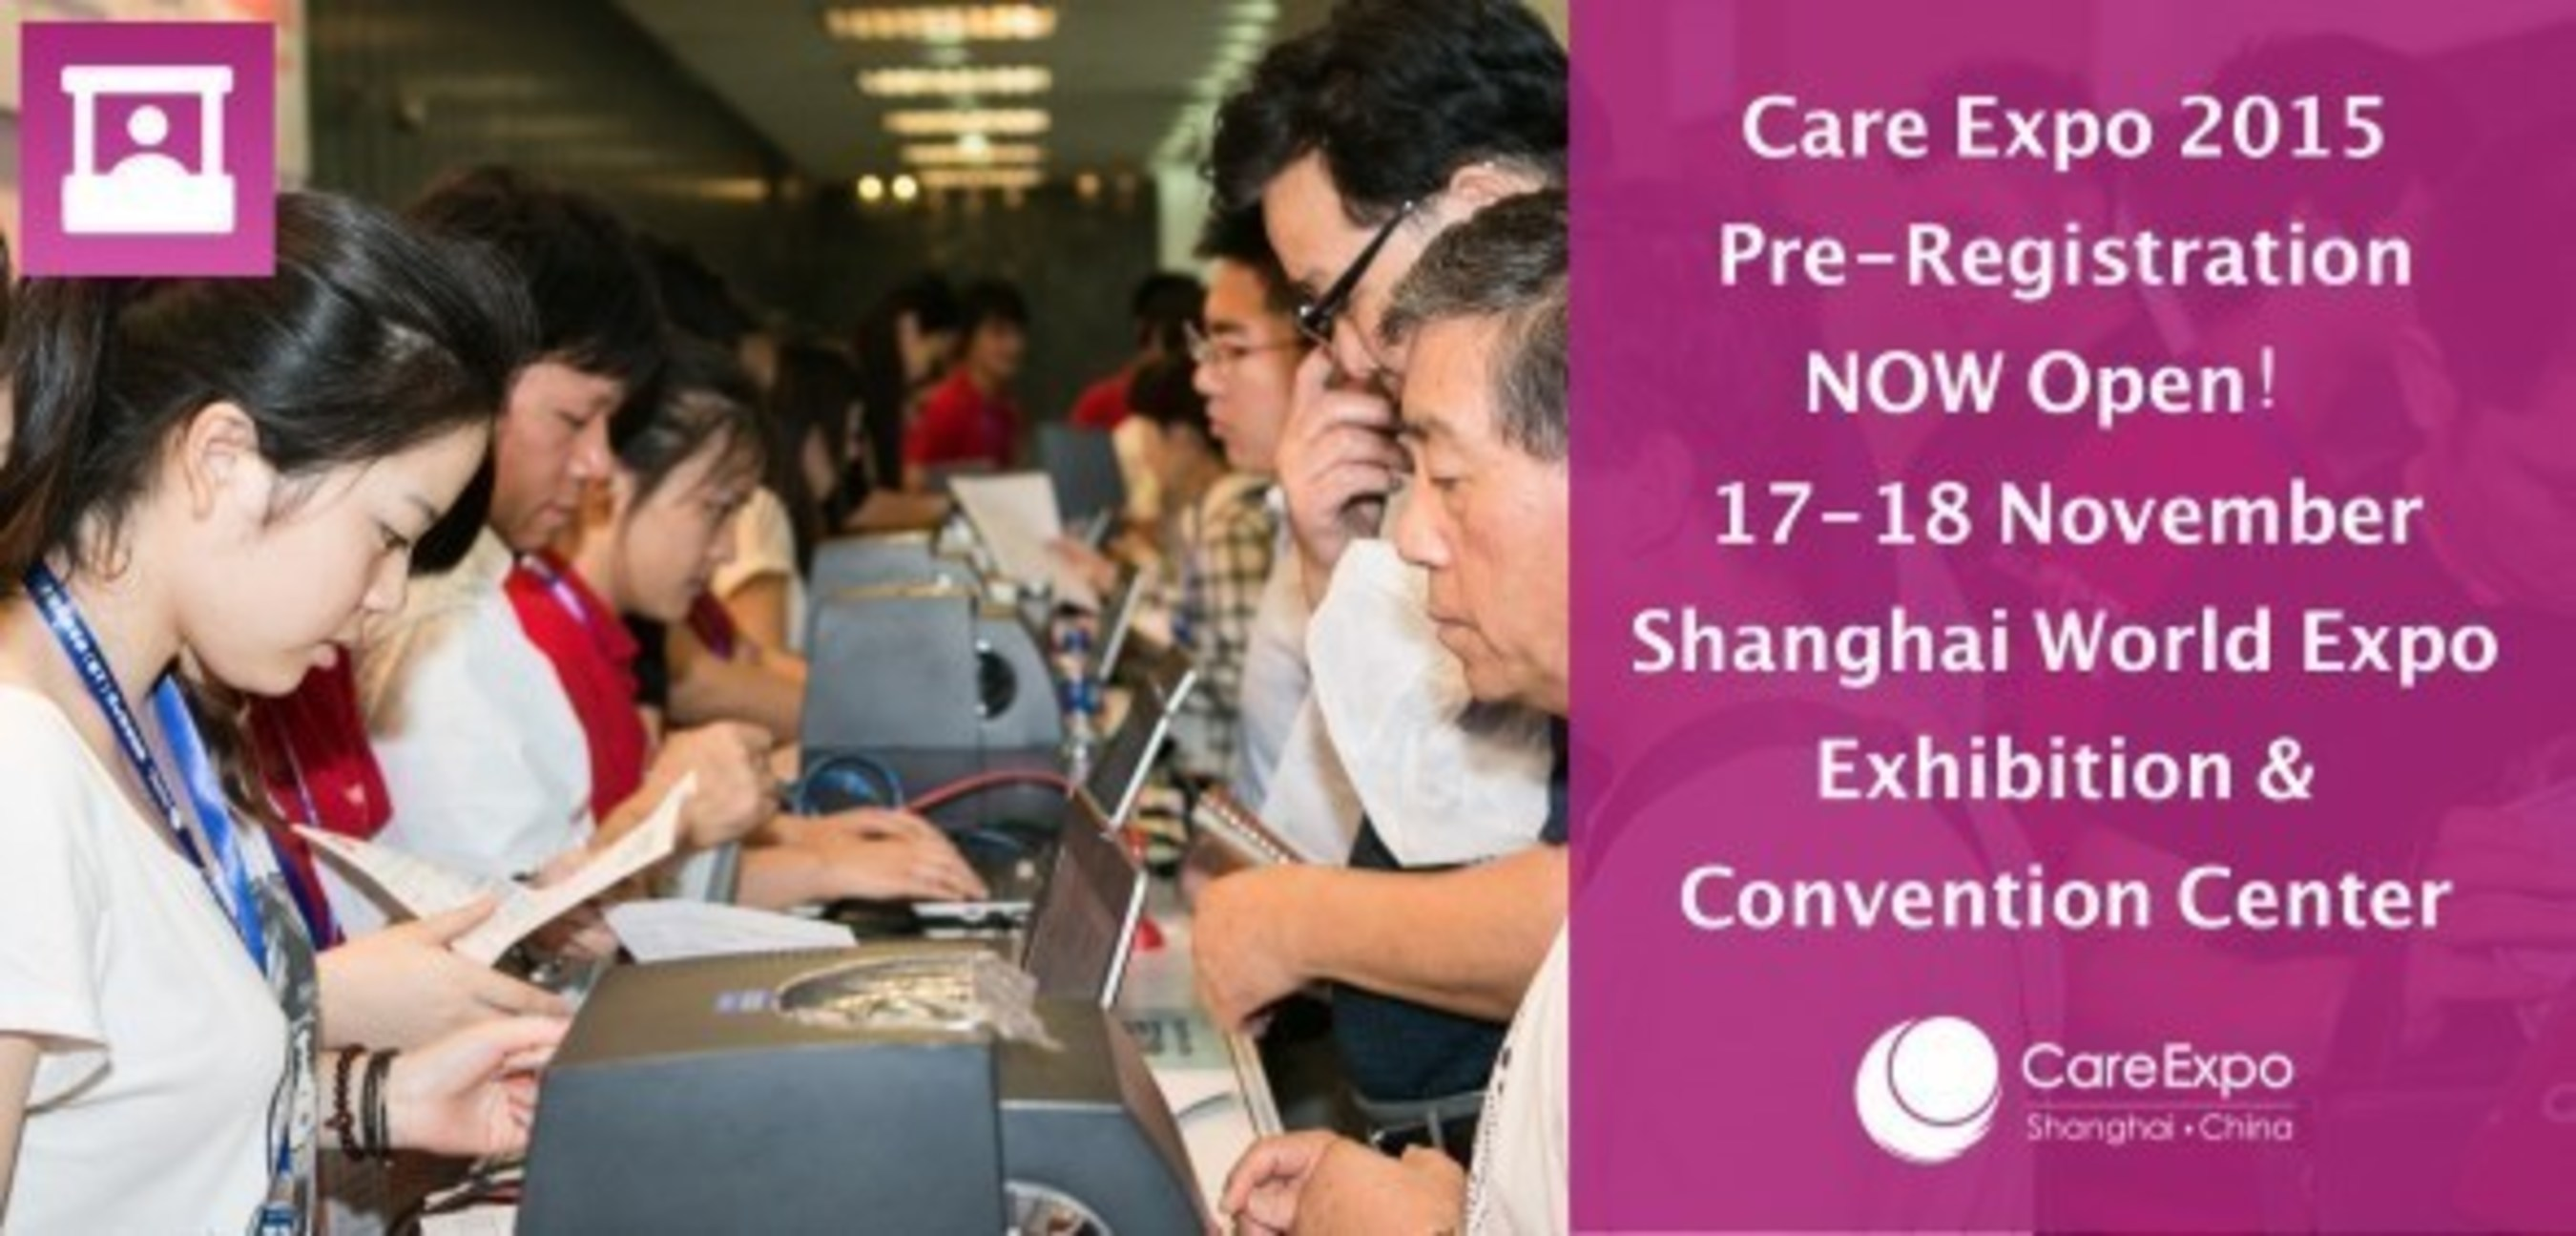 Care Expo 2015 Online Registration is Now Open